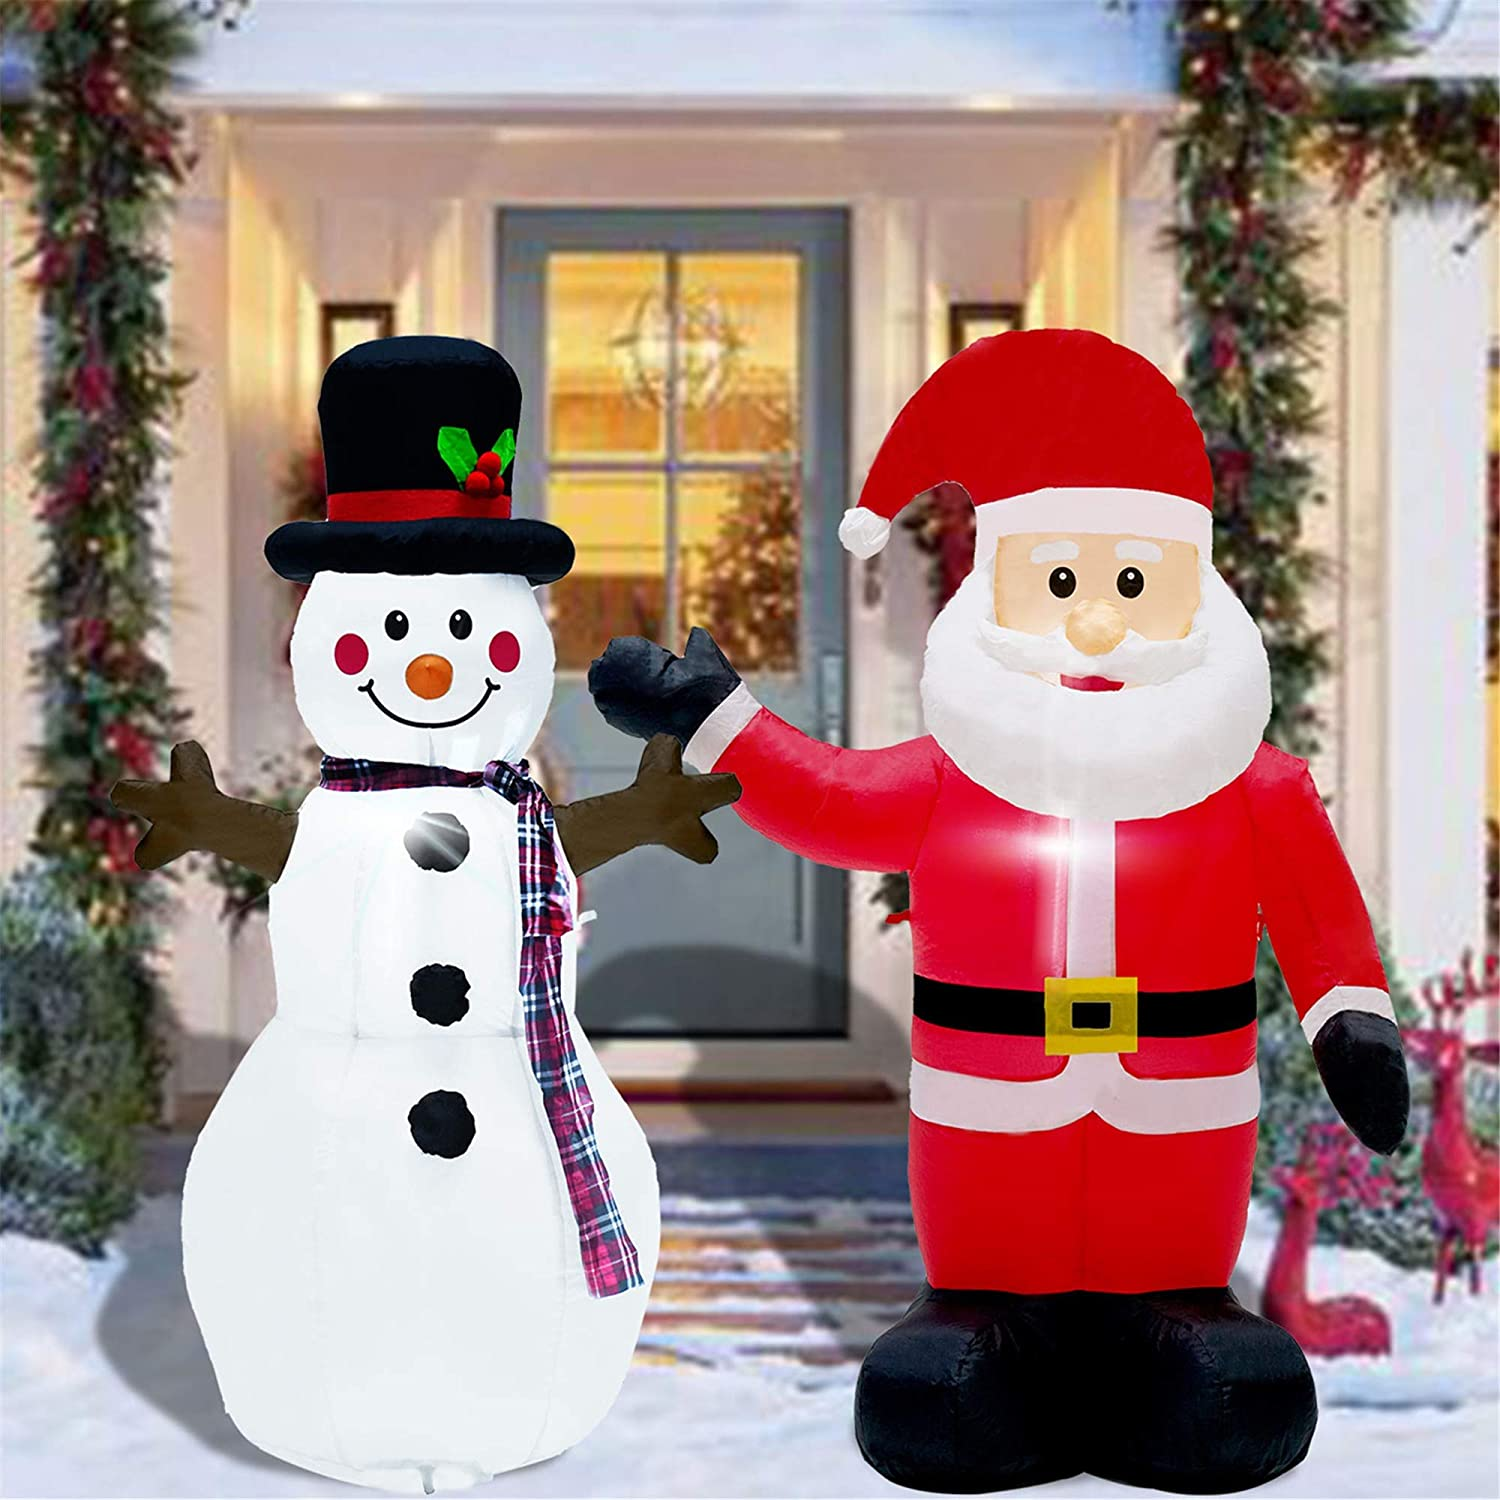 Twinkle Star Set Of 2 Christmas Inflatables Lighted Santa Claus And Snowman 4ft Blow Up Indoor Outdoor Xmas Decor Lawn Yard Garden Decorations Garden Outdoor